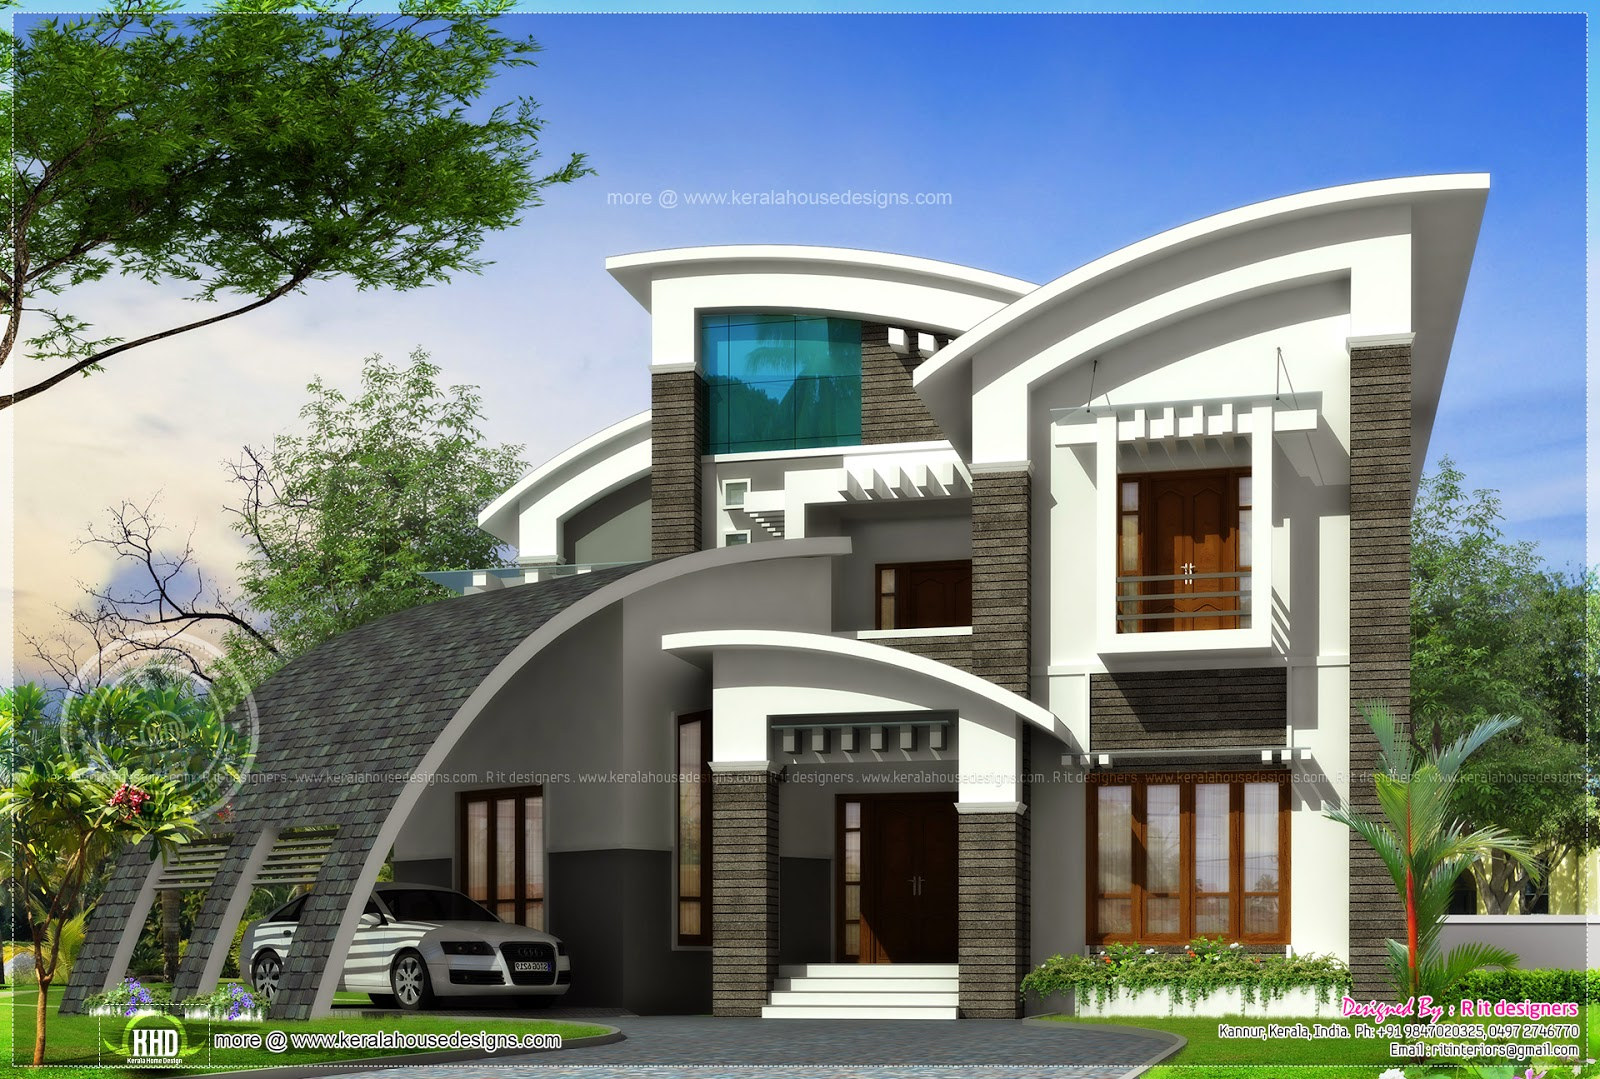 Super luxury ultra modern house design kerala home for Modern house plan